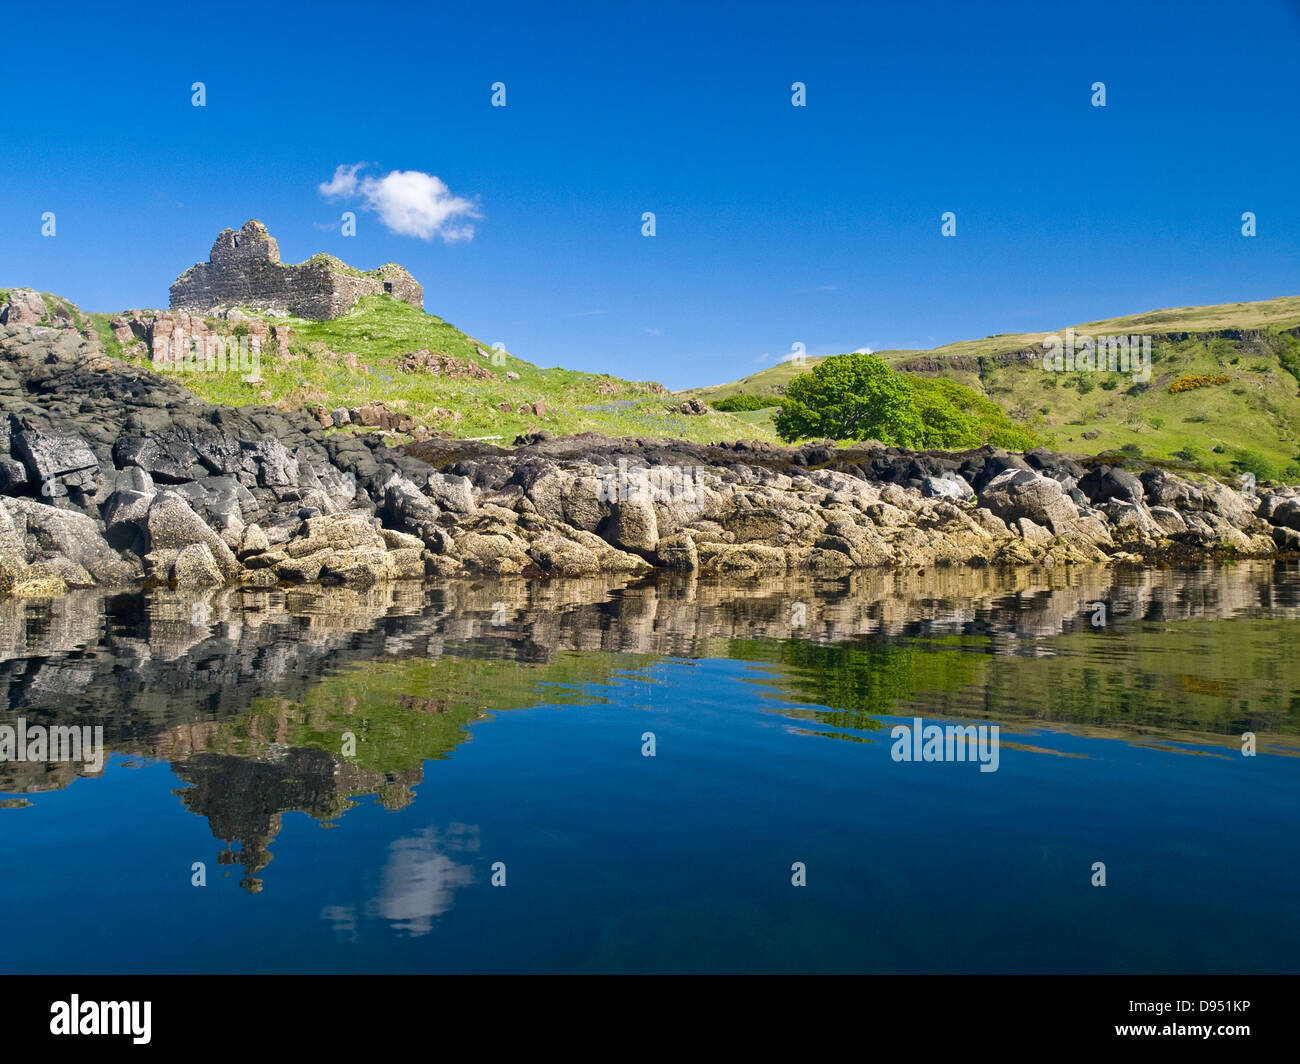 Ardtornish Castle, Scotland, on the mainland side of the Sound Of Mull - Stock Image